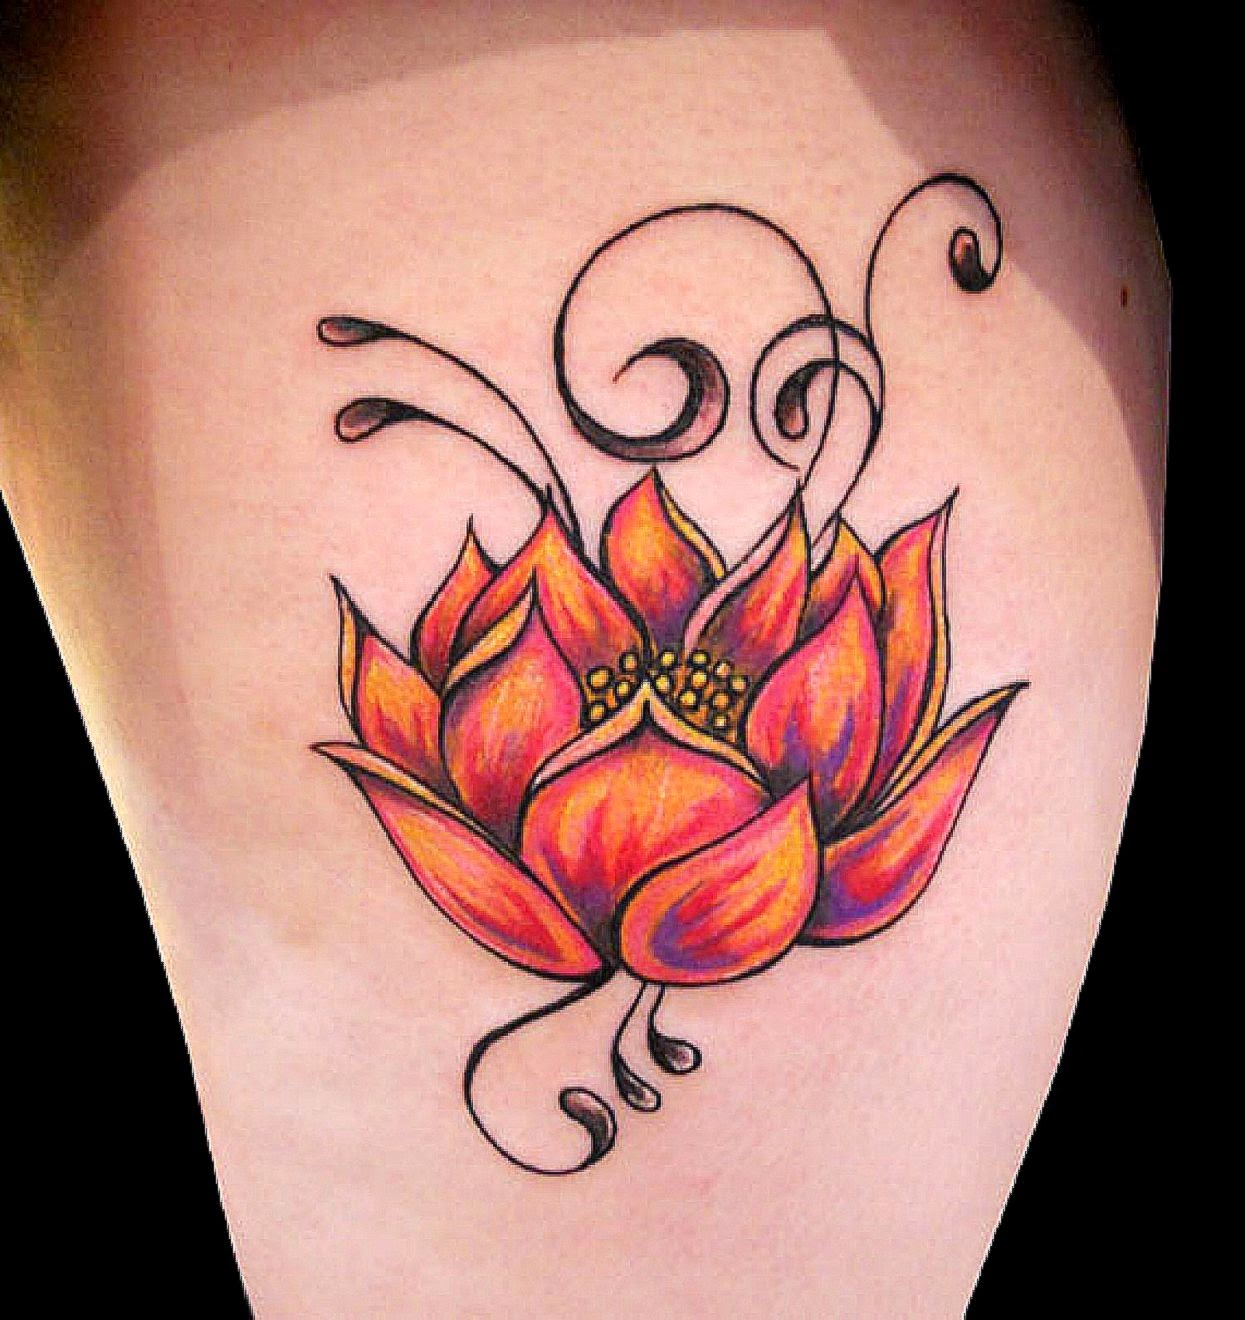 Lotus Flower Tattoo Free Tattoo Pictures